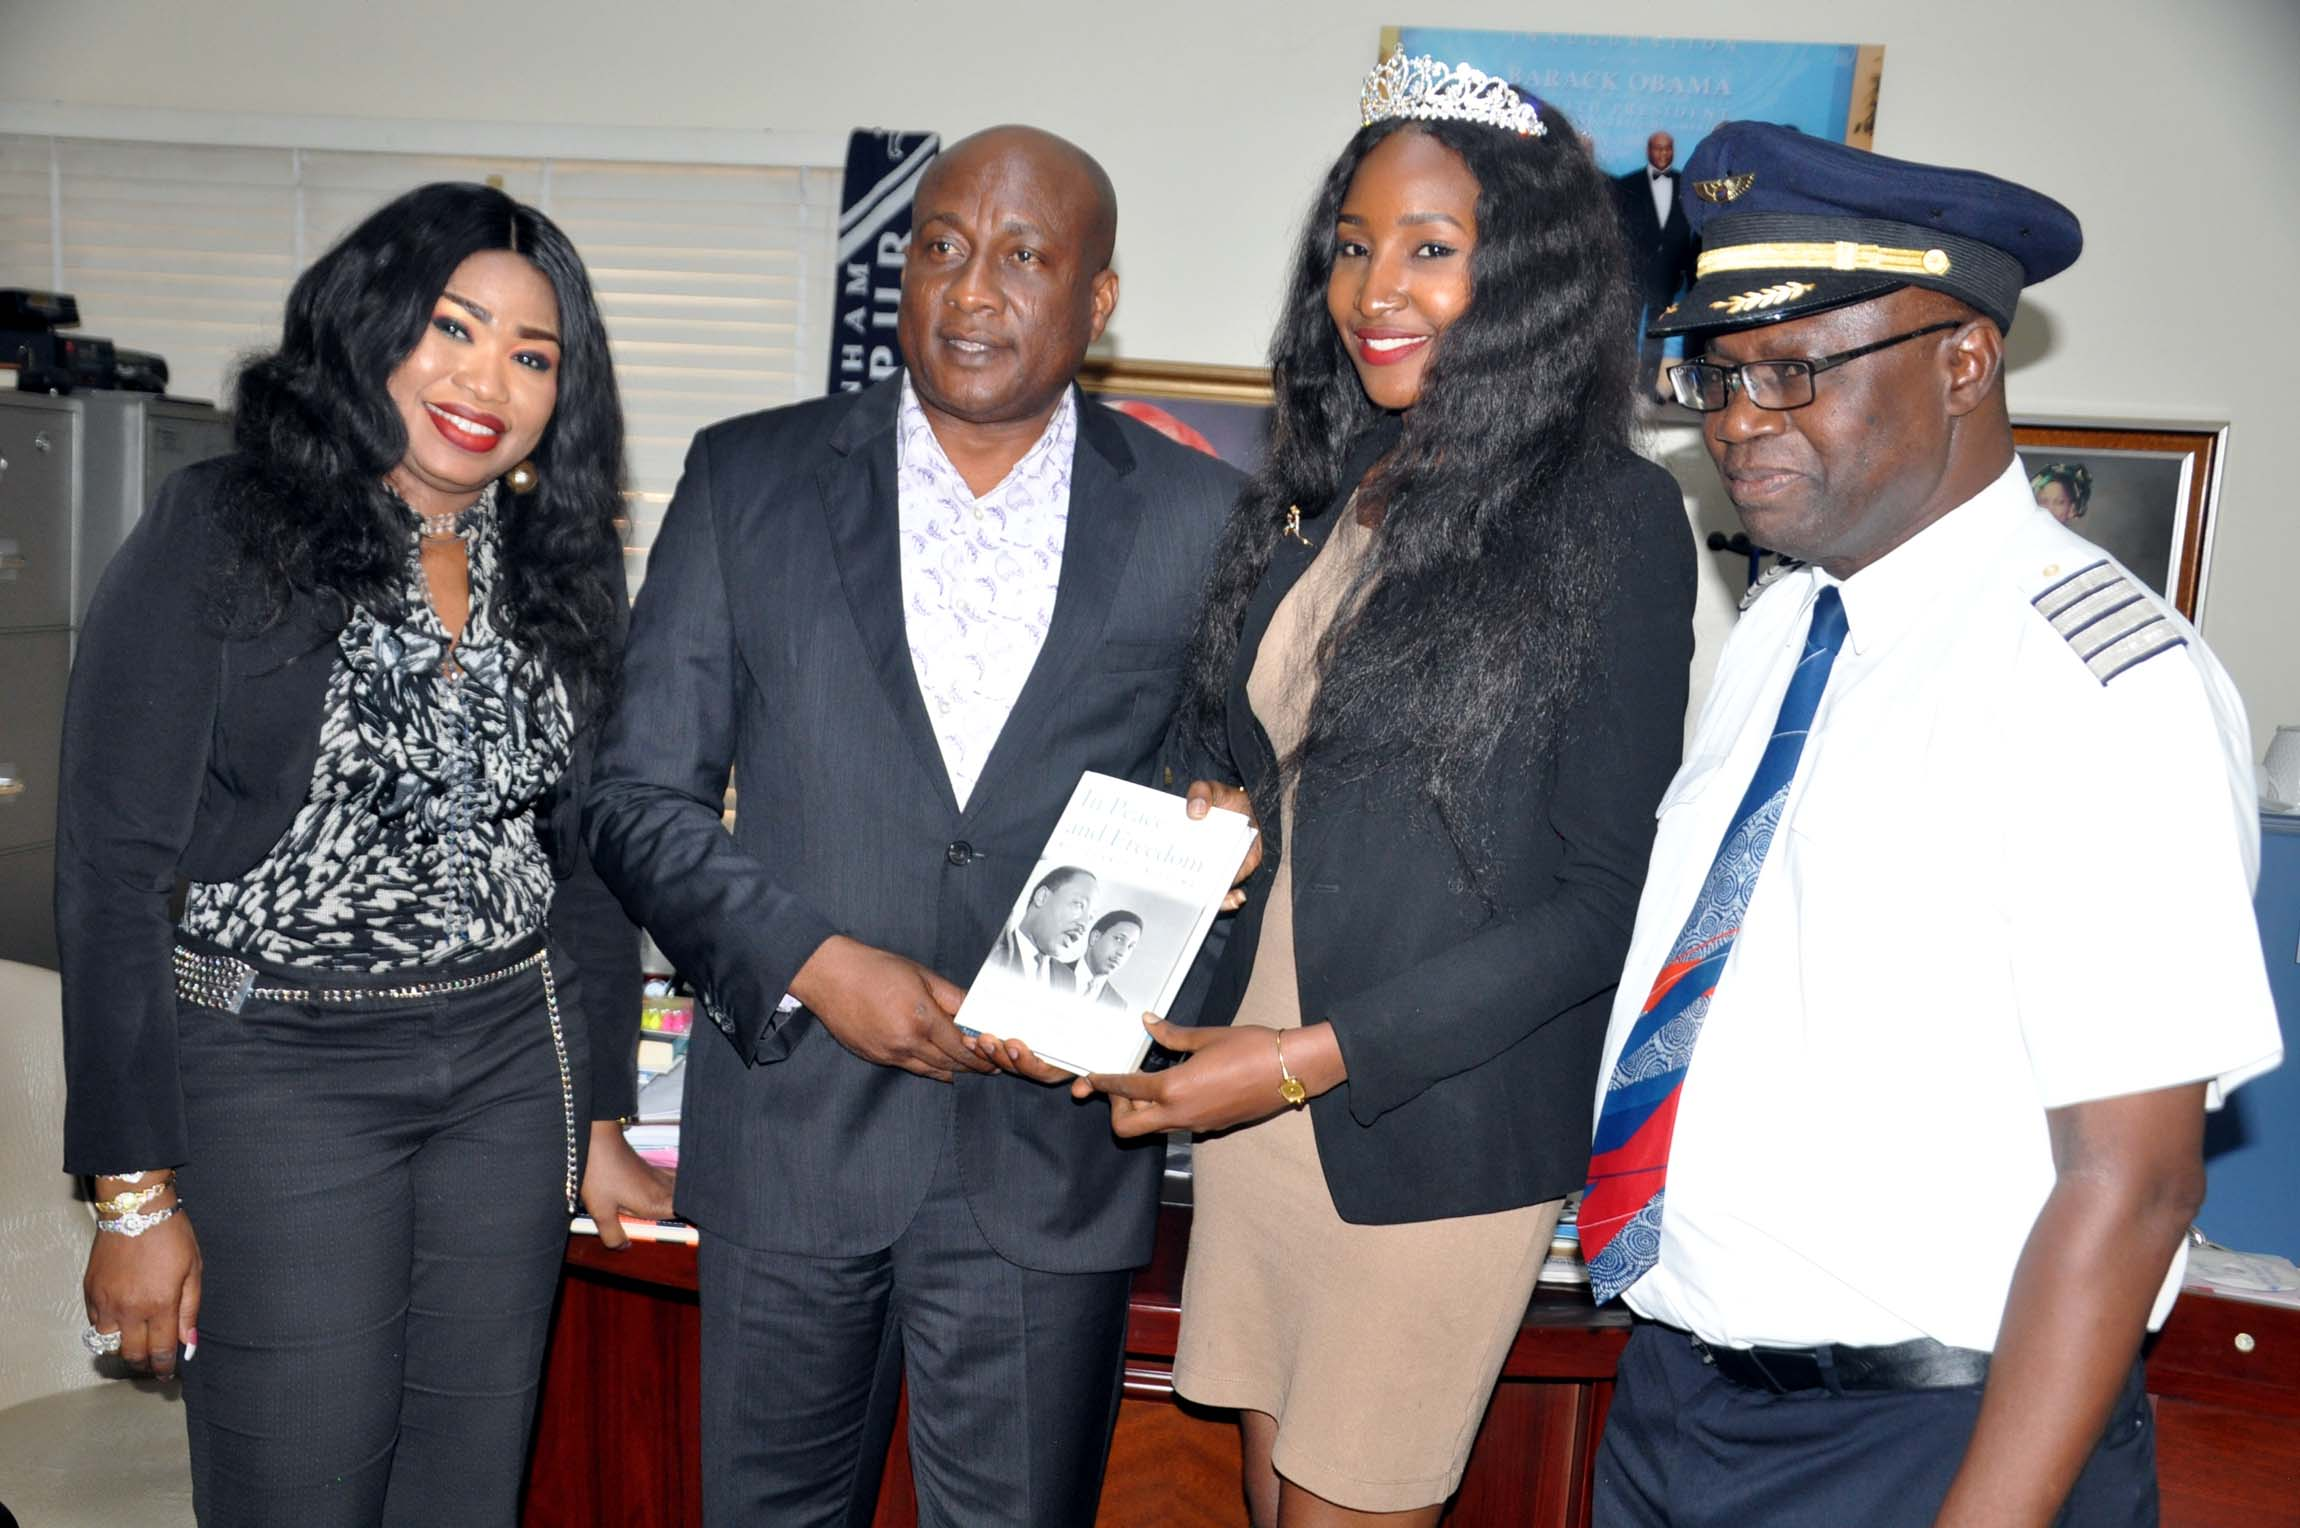 """Air Peace Ambassador, Miss. Nigeria 2015, Leesi P. Peter-Vigboro, (3rd left) receiving copy of a book """"None Violent"""" from Chairman, Air Peace, Allen Onyema (2nd left), Chief Operating Officer/Managing Director, Miss. Oluwatoyin Olajide (left) and Director of Flight Operations, Capt. Wellington Eyimina during Miss. Nigeria's courtesy visit to Air Peace in Lagos"""